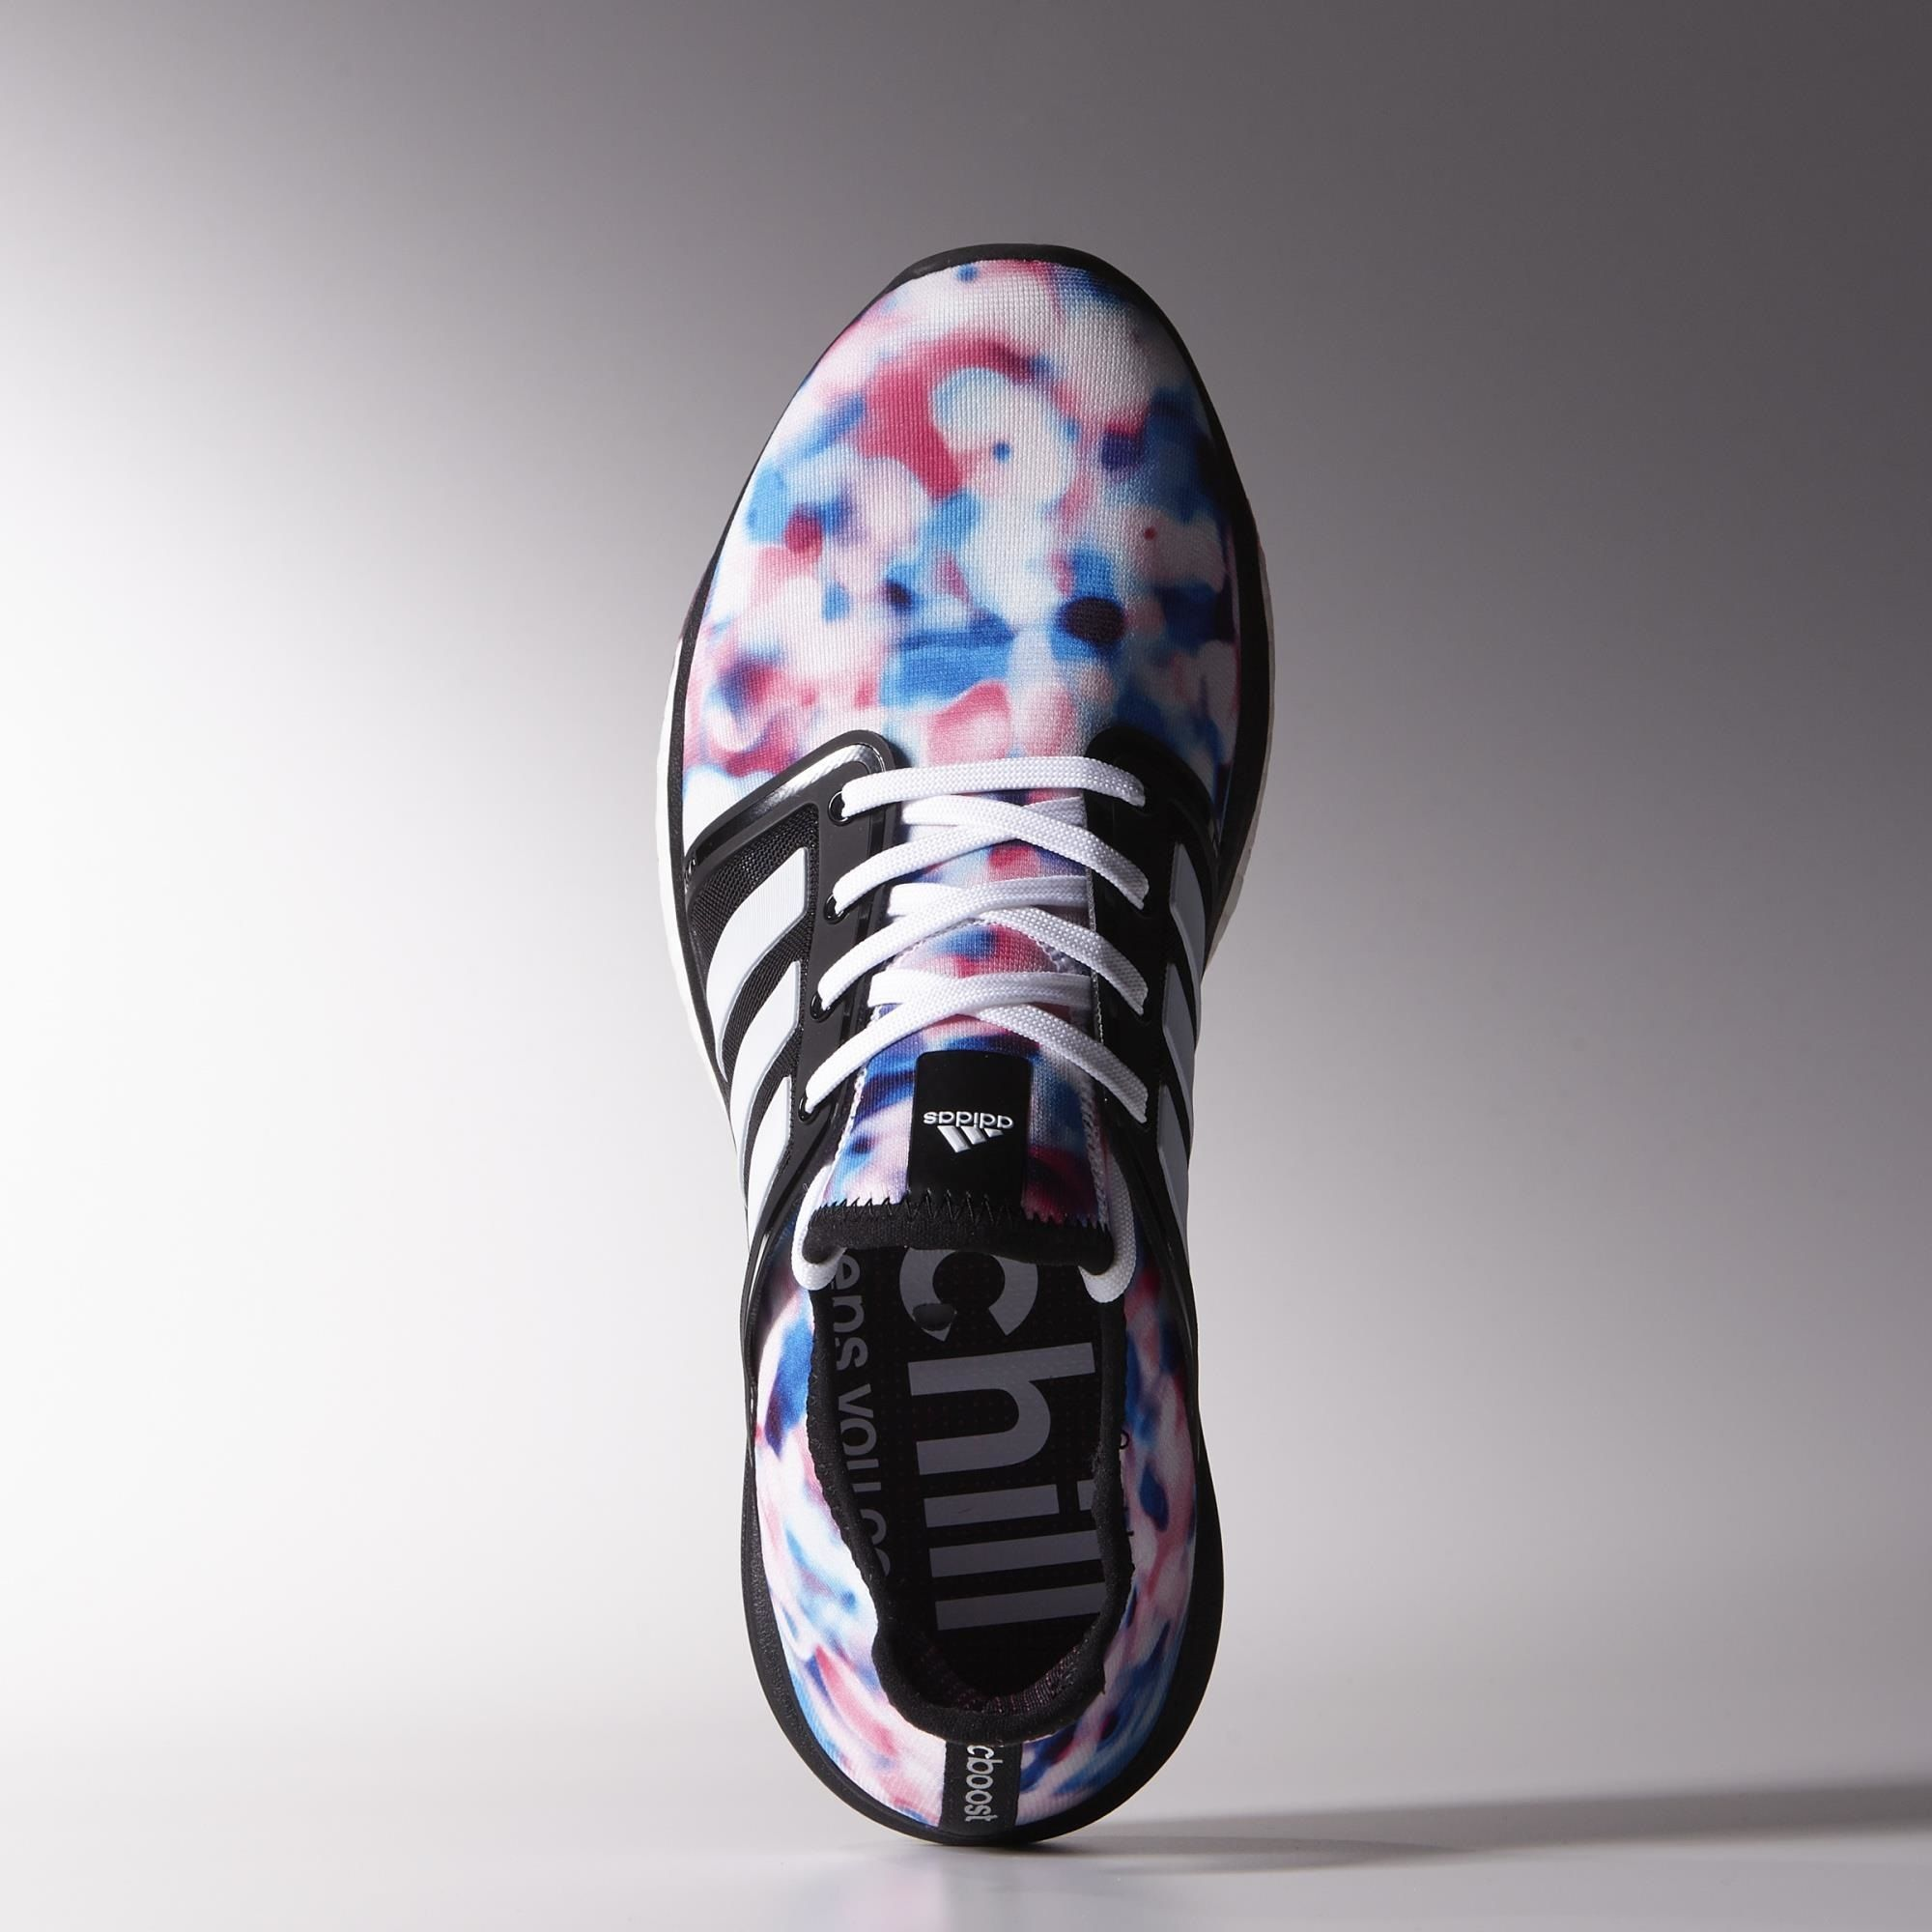 adidas Climachill Sonic Boost Shoes | Boost shoes, Adidas